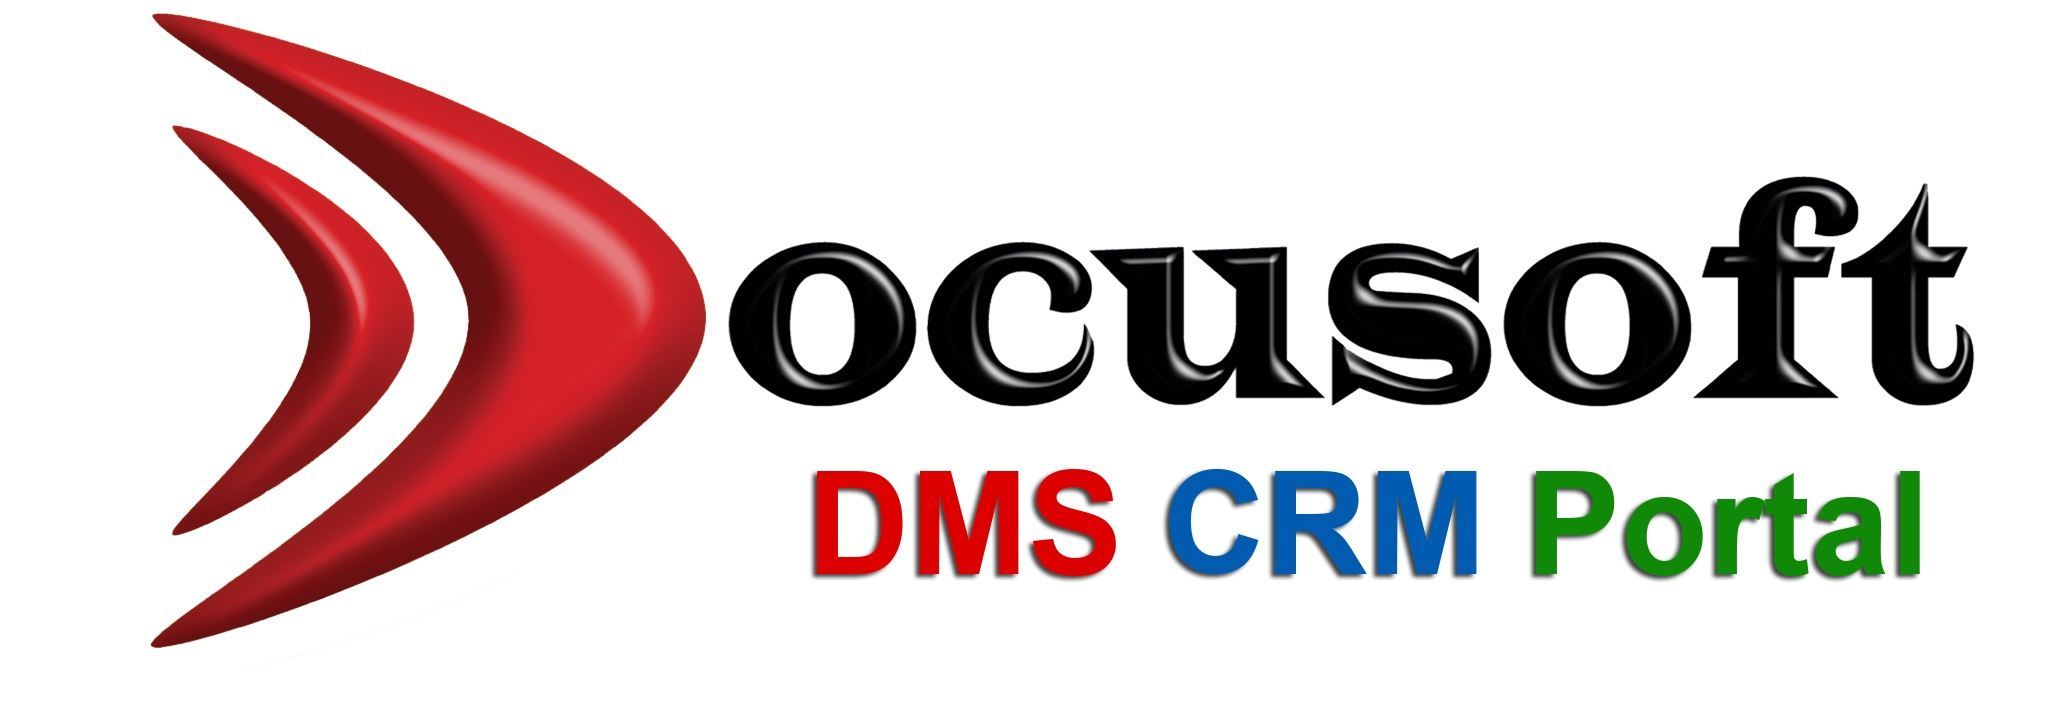 Docusoft_Ltd Logo